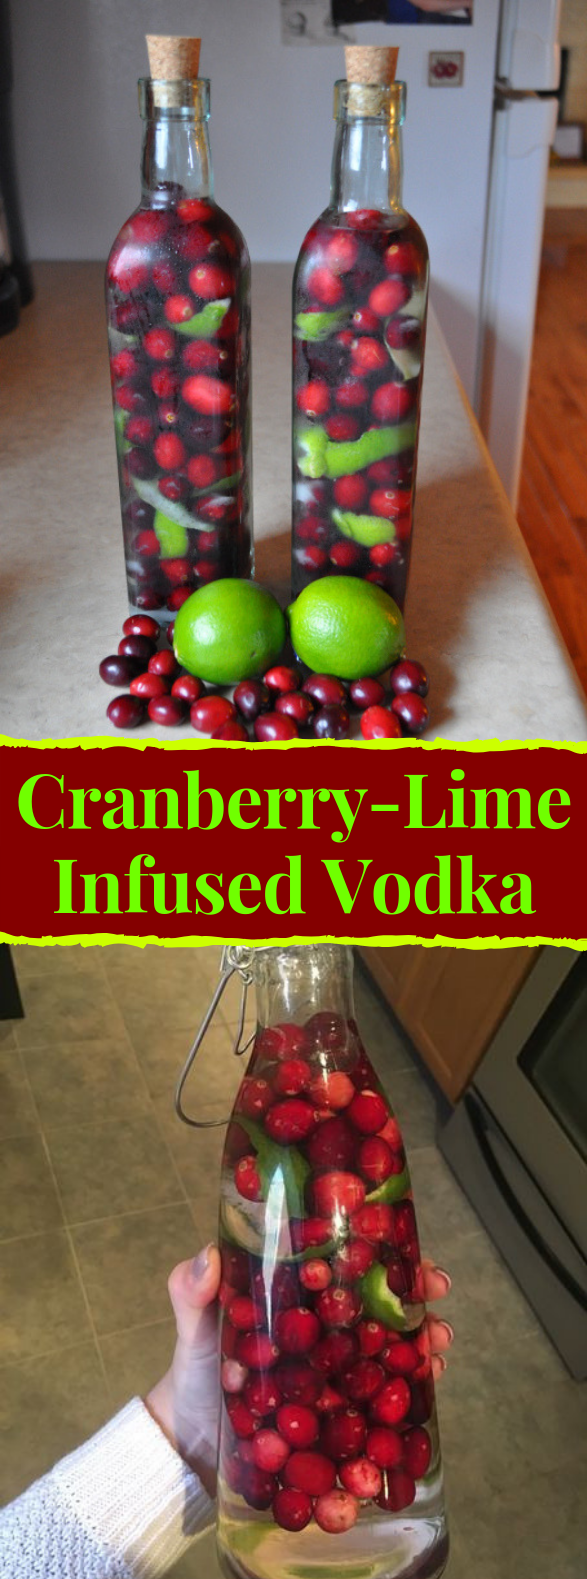 Cranberry-Lime Infused Vodka #drinks #cocktail